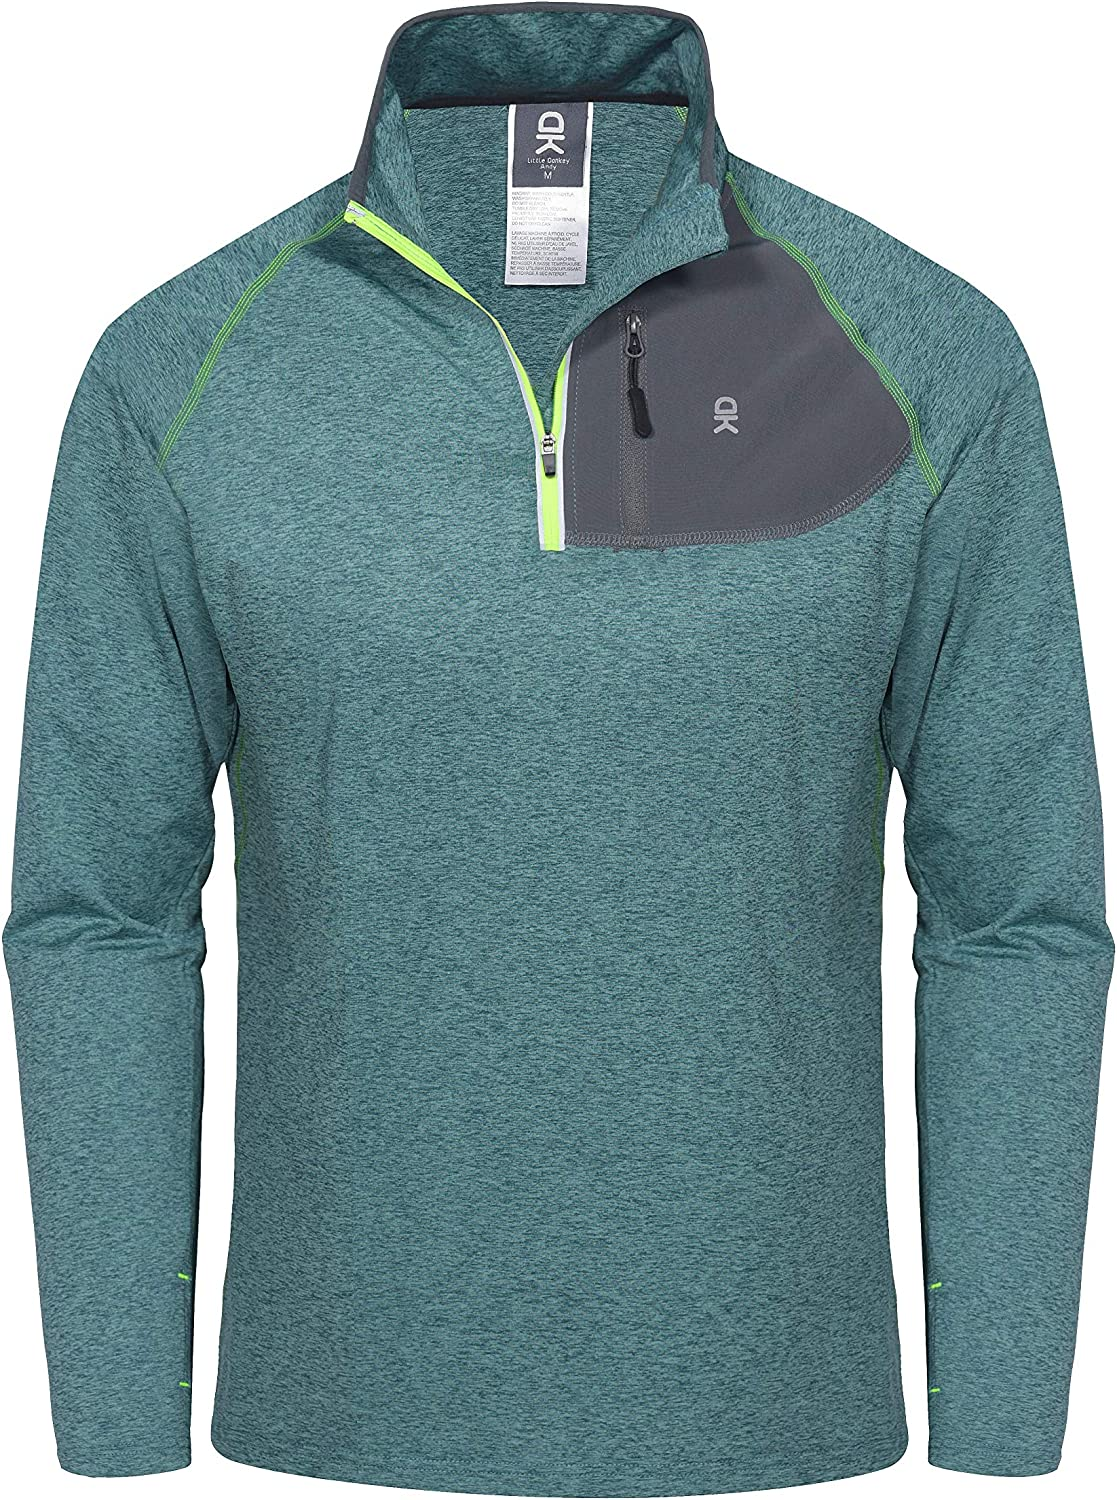 Little Donkey Andy Men's Long Sleeve Quick Dry Lightweight Running Exercise Sports T-Shirt Top